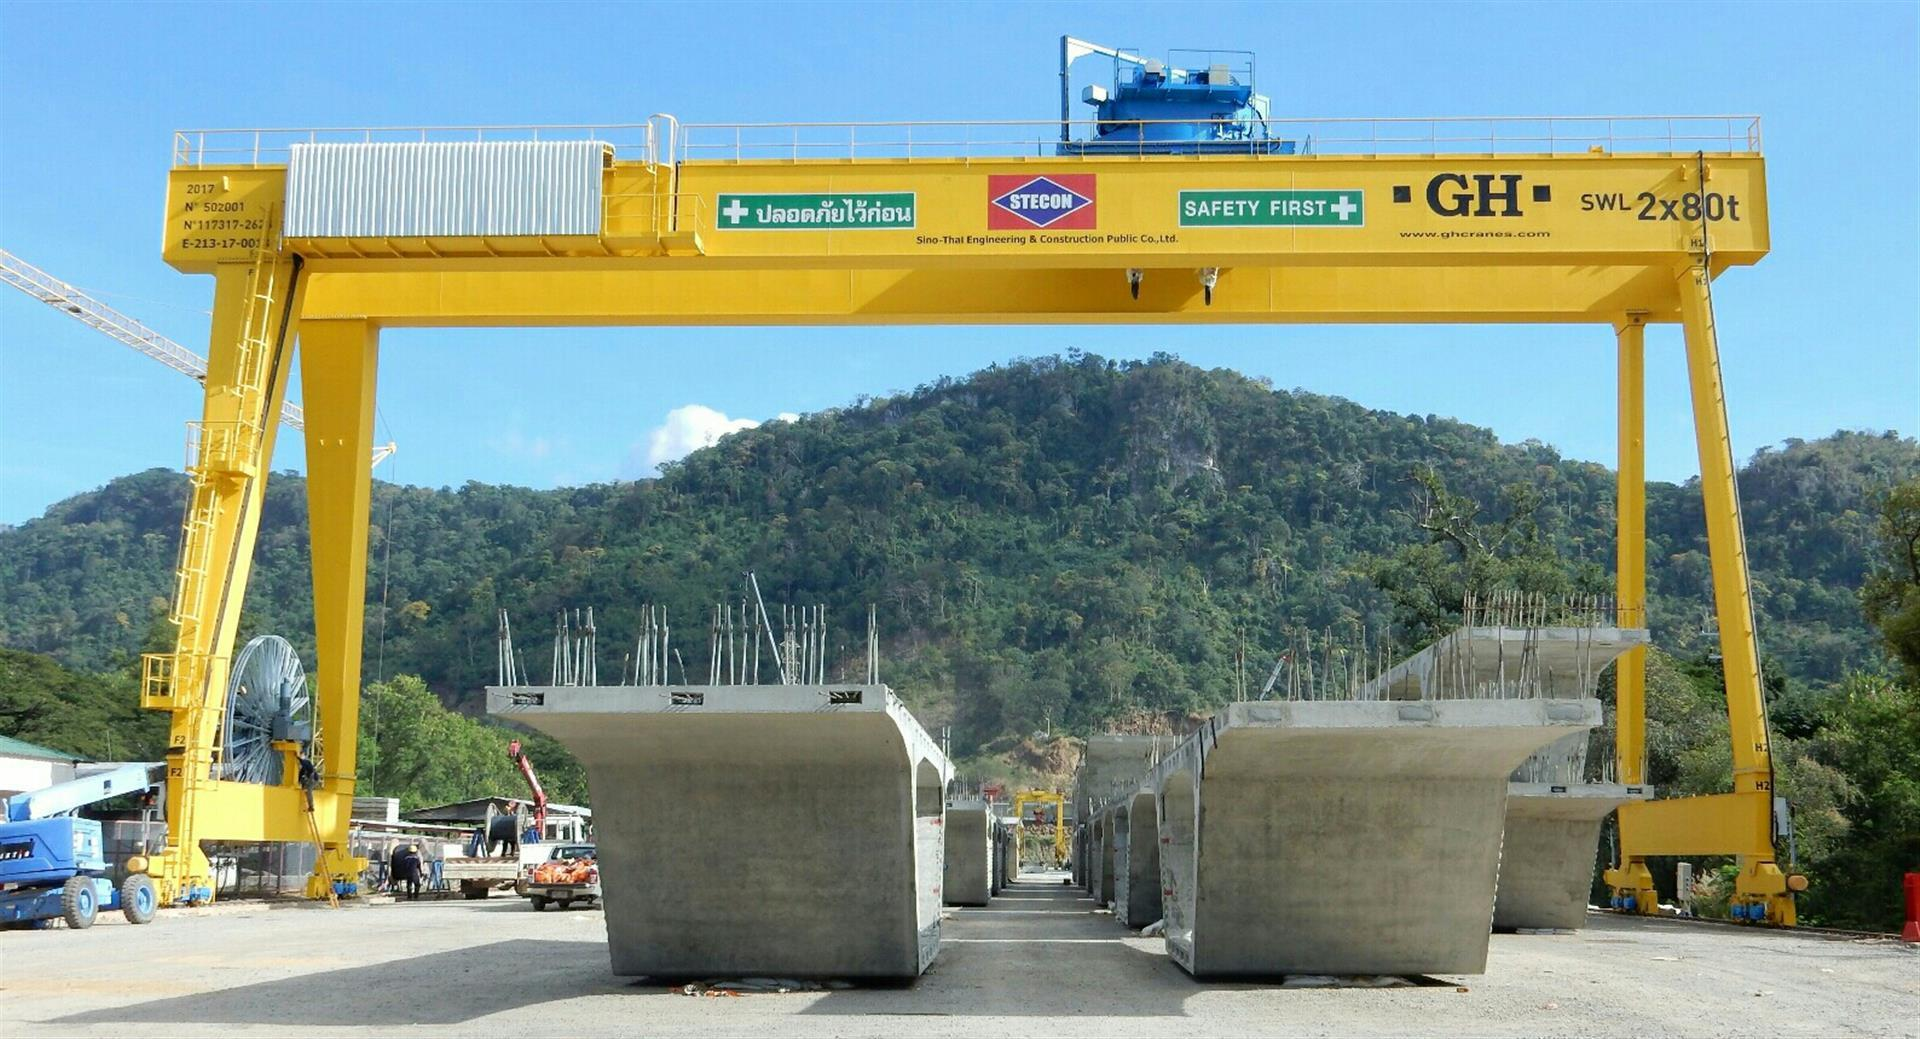 160 tn gantry crane with rotating crab: the market recognizes us. LGH, a new challenge begins in Thailand.